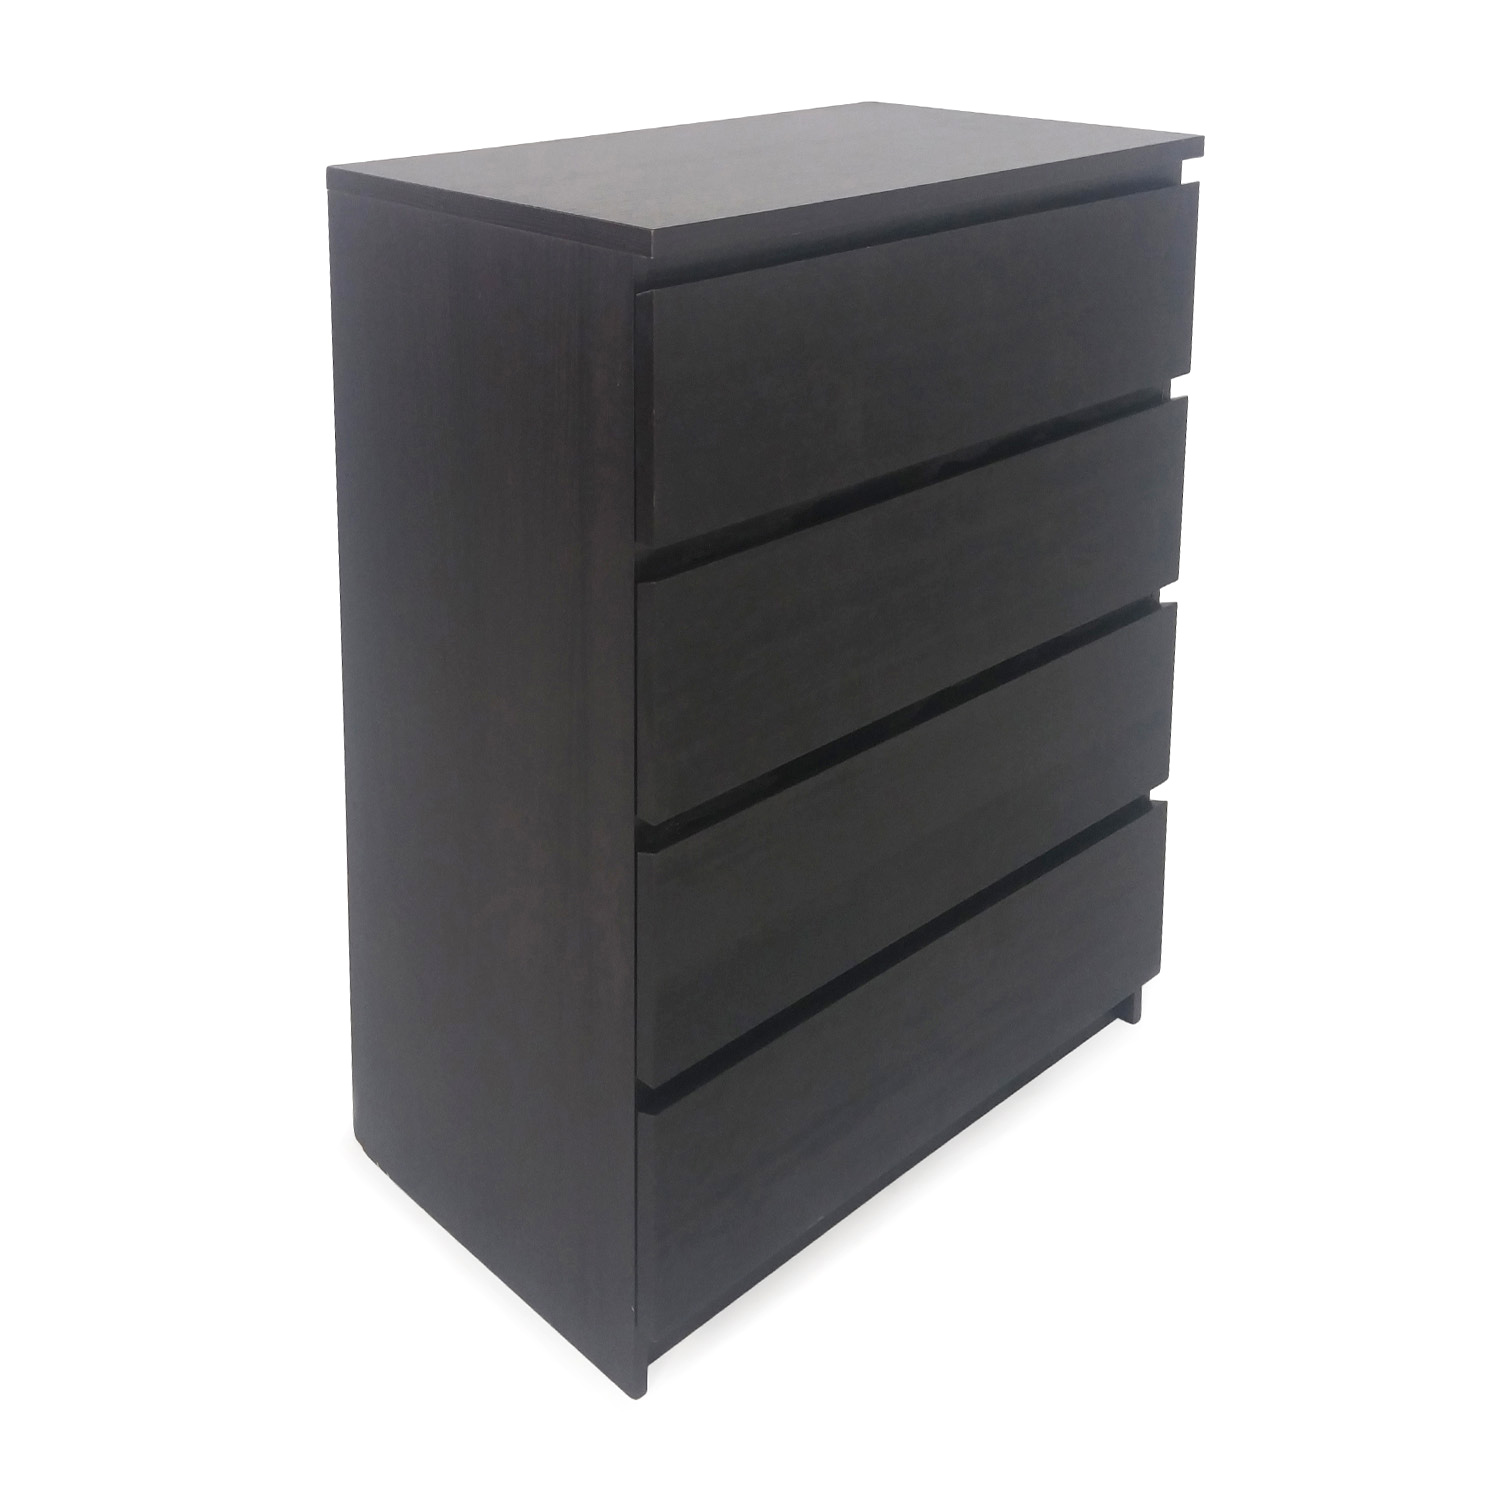 60 Off Ikea Malm 4 Drawer Dresser Storage